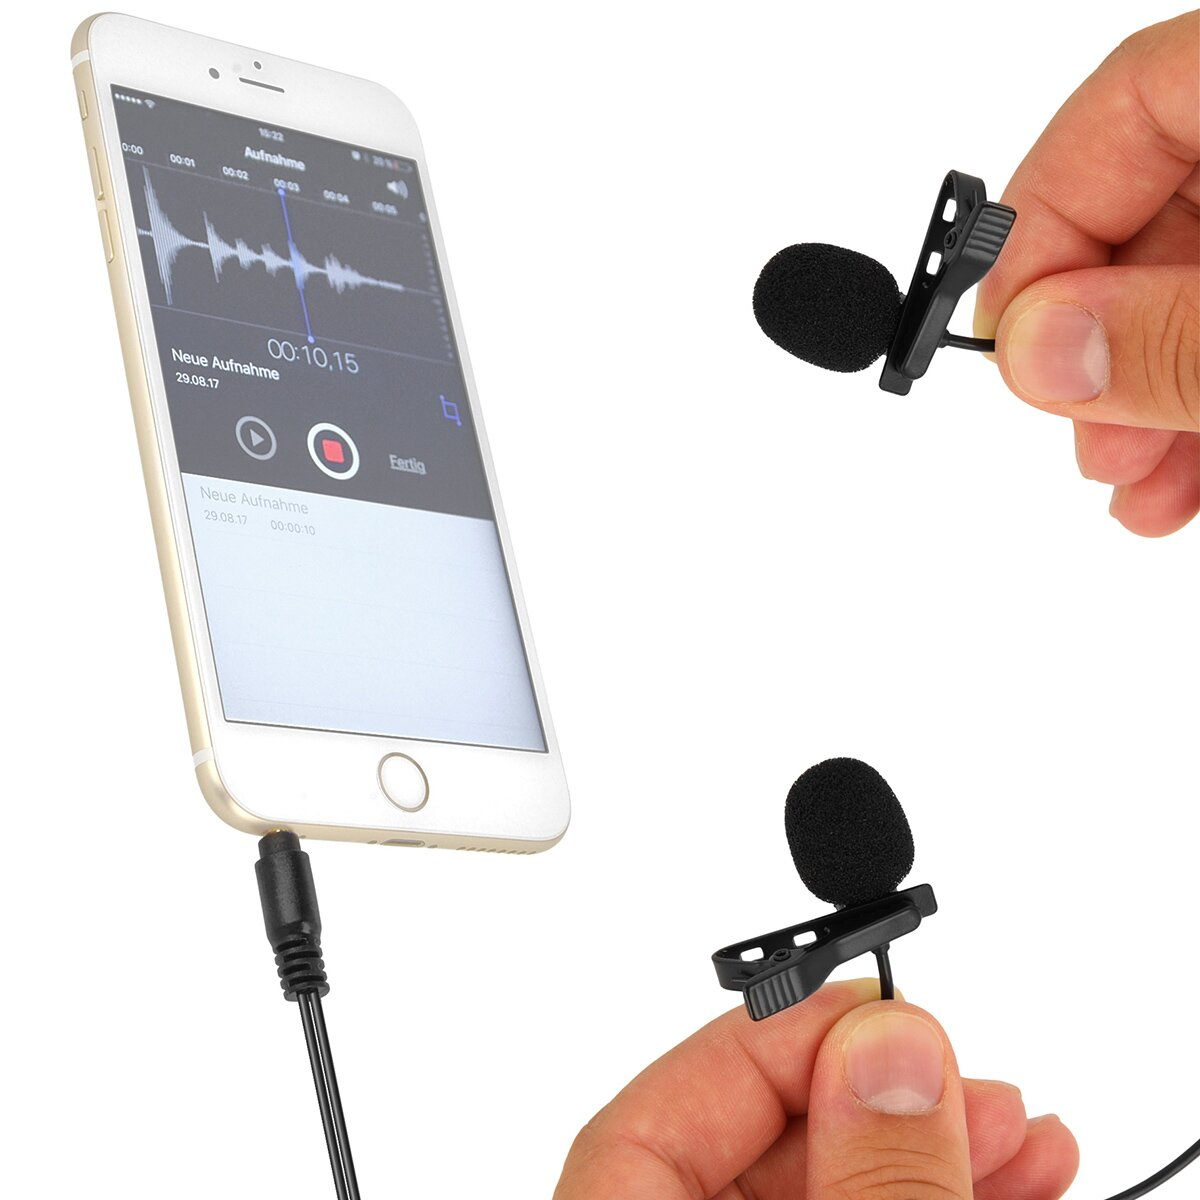 BOYA Lavalier mic for Smartphone, tablets and other mobile devices - BY-LM400